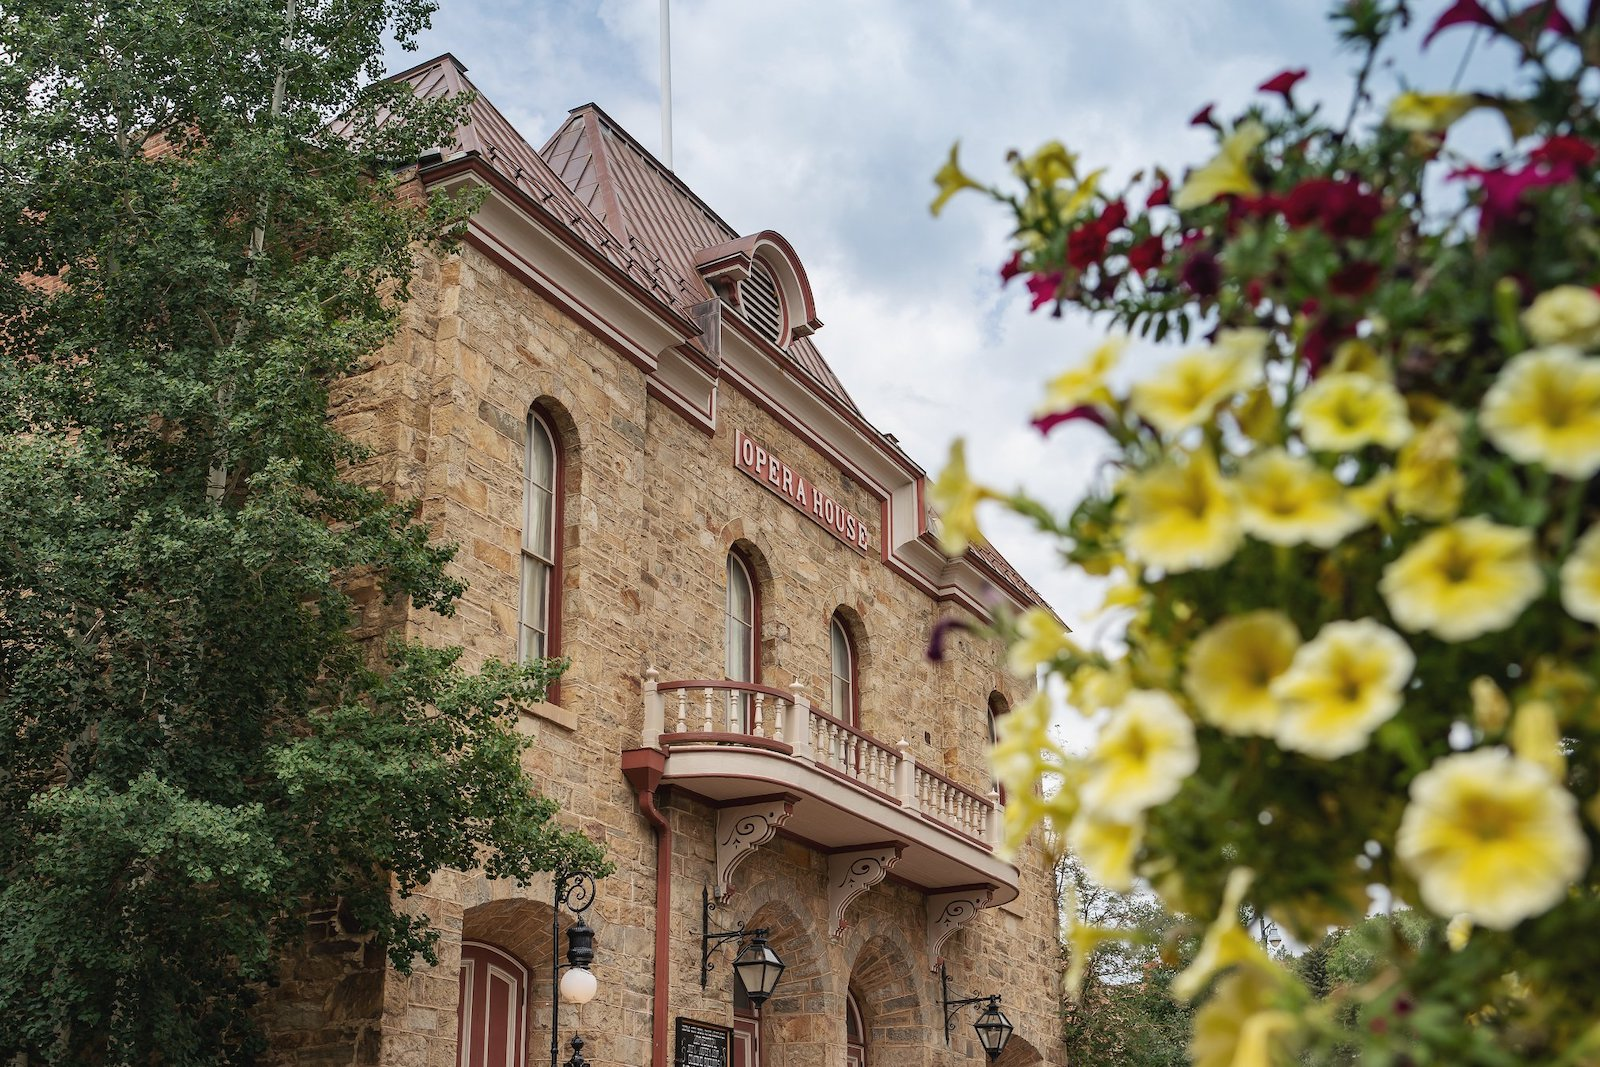 Image of the Central City Opera House in Colorado